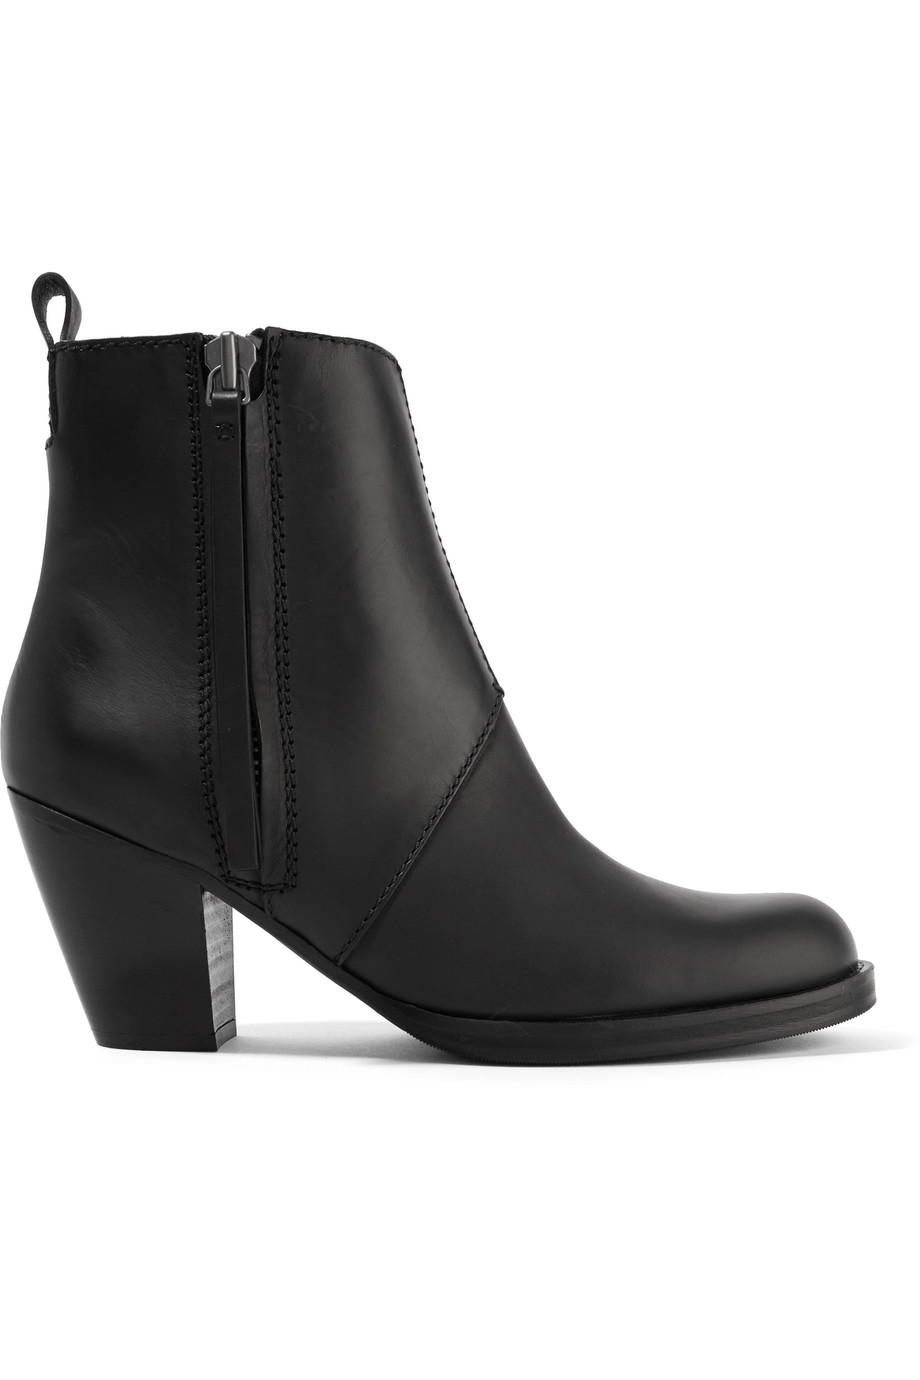 Acne Studios The Pistol Leather Ankle Boots, Black, Women's US Size: 8.5, Size: 39